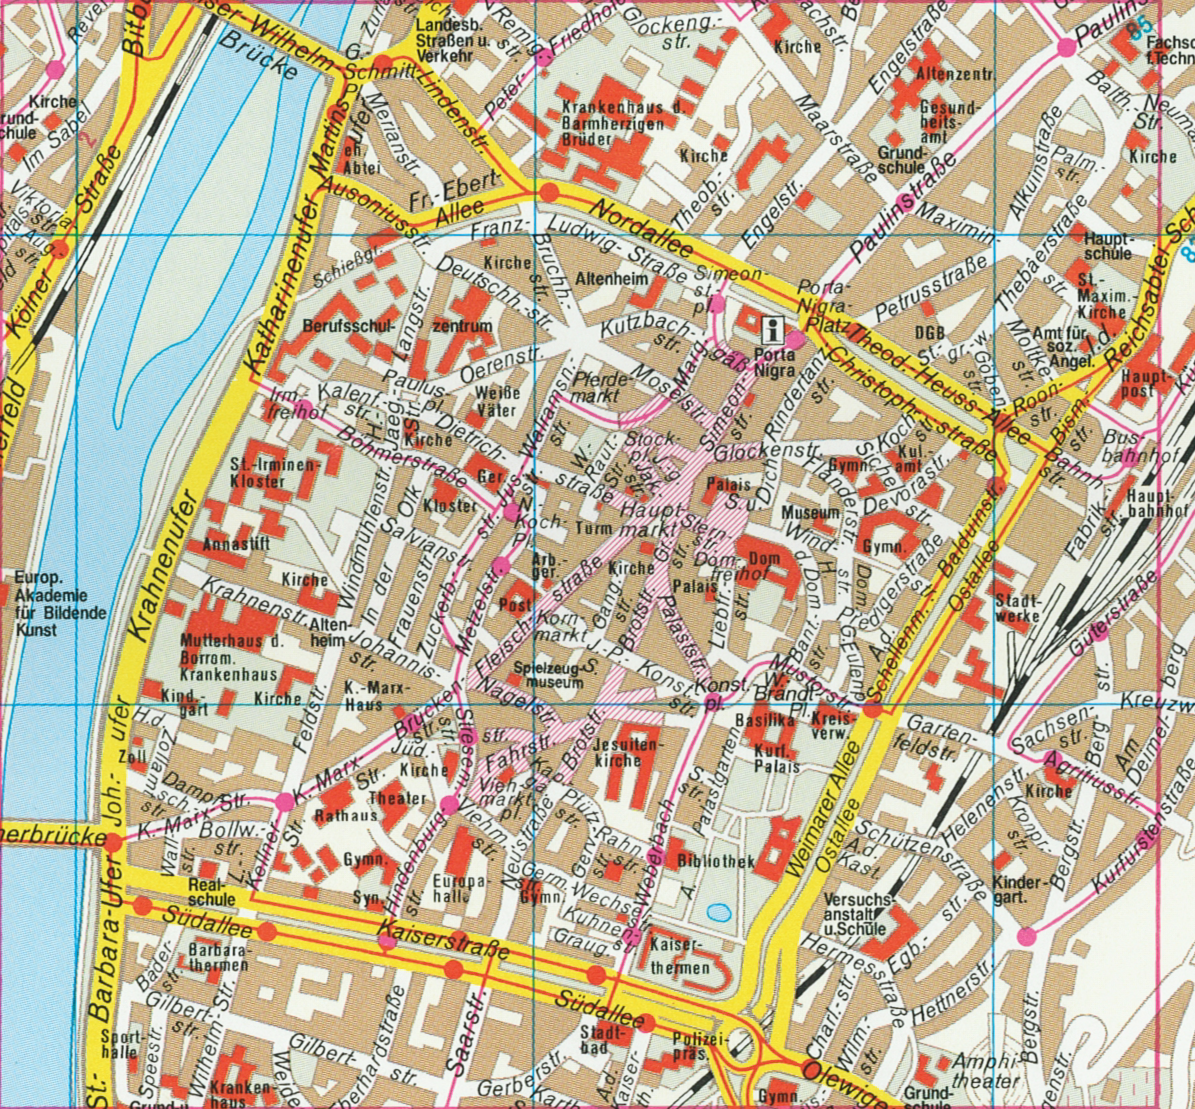 frankfurt city center map – Munich City Map Tourist